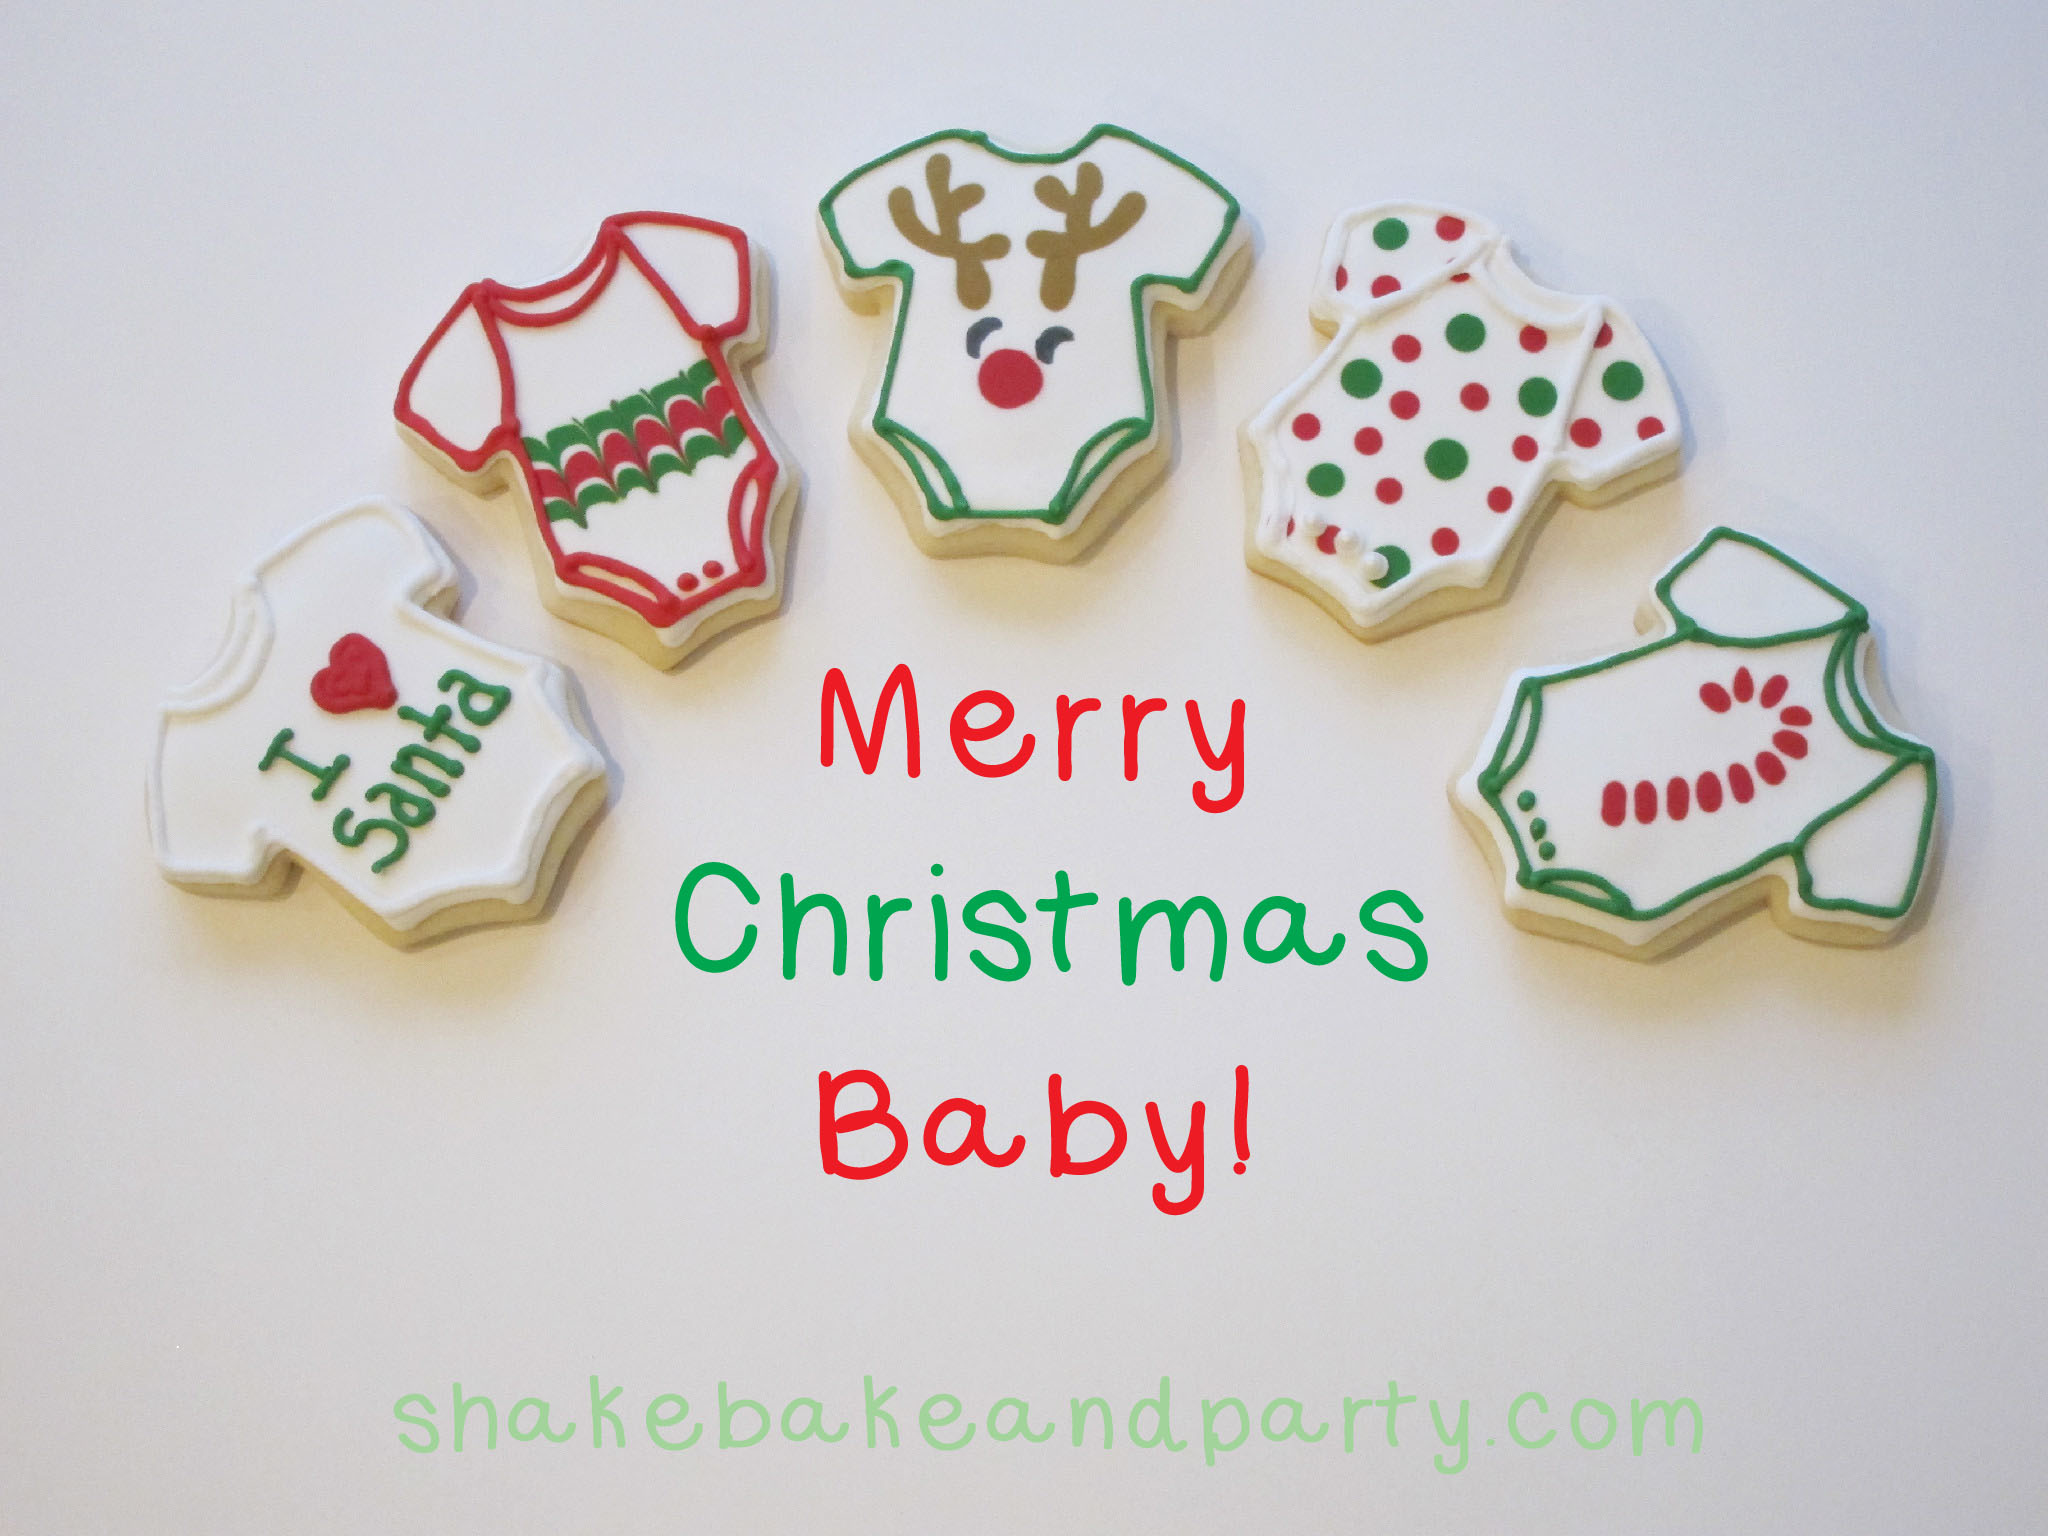 babys first christmas cookies shake bake and party - Merry Christmas Baby